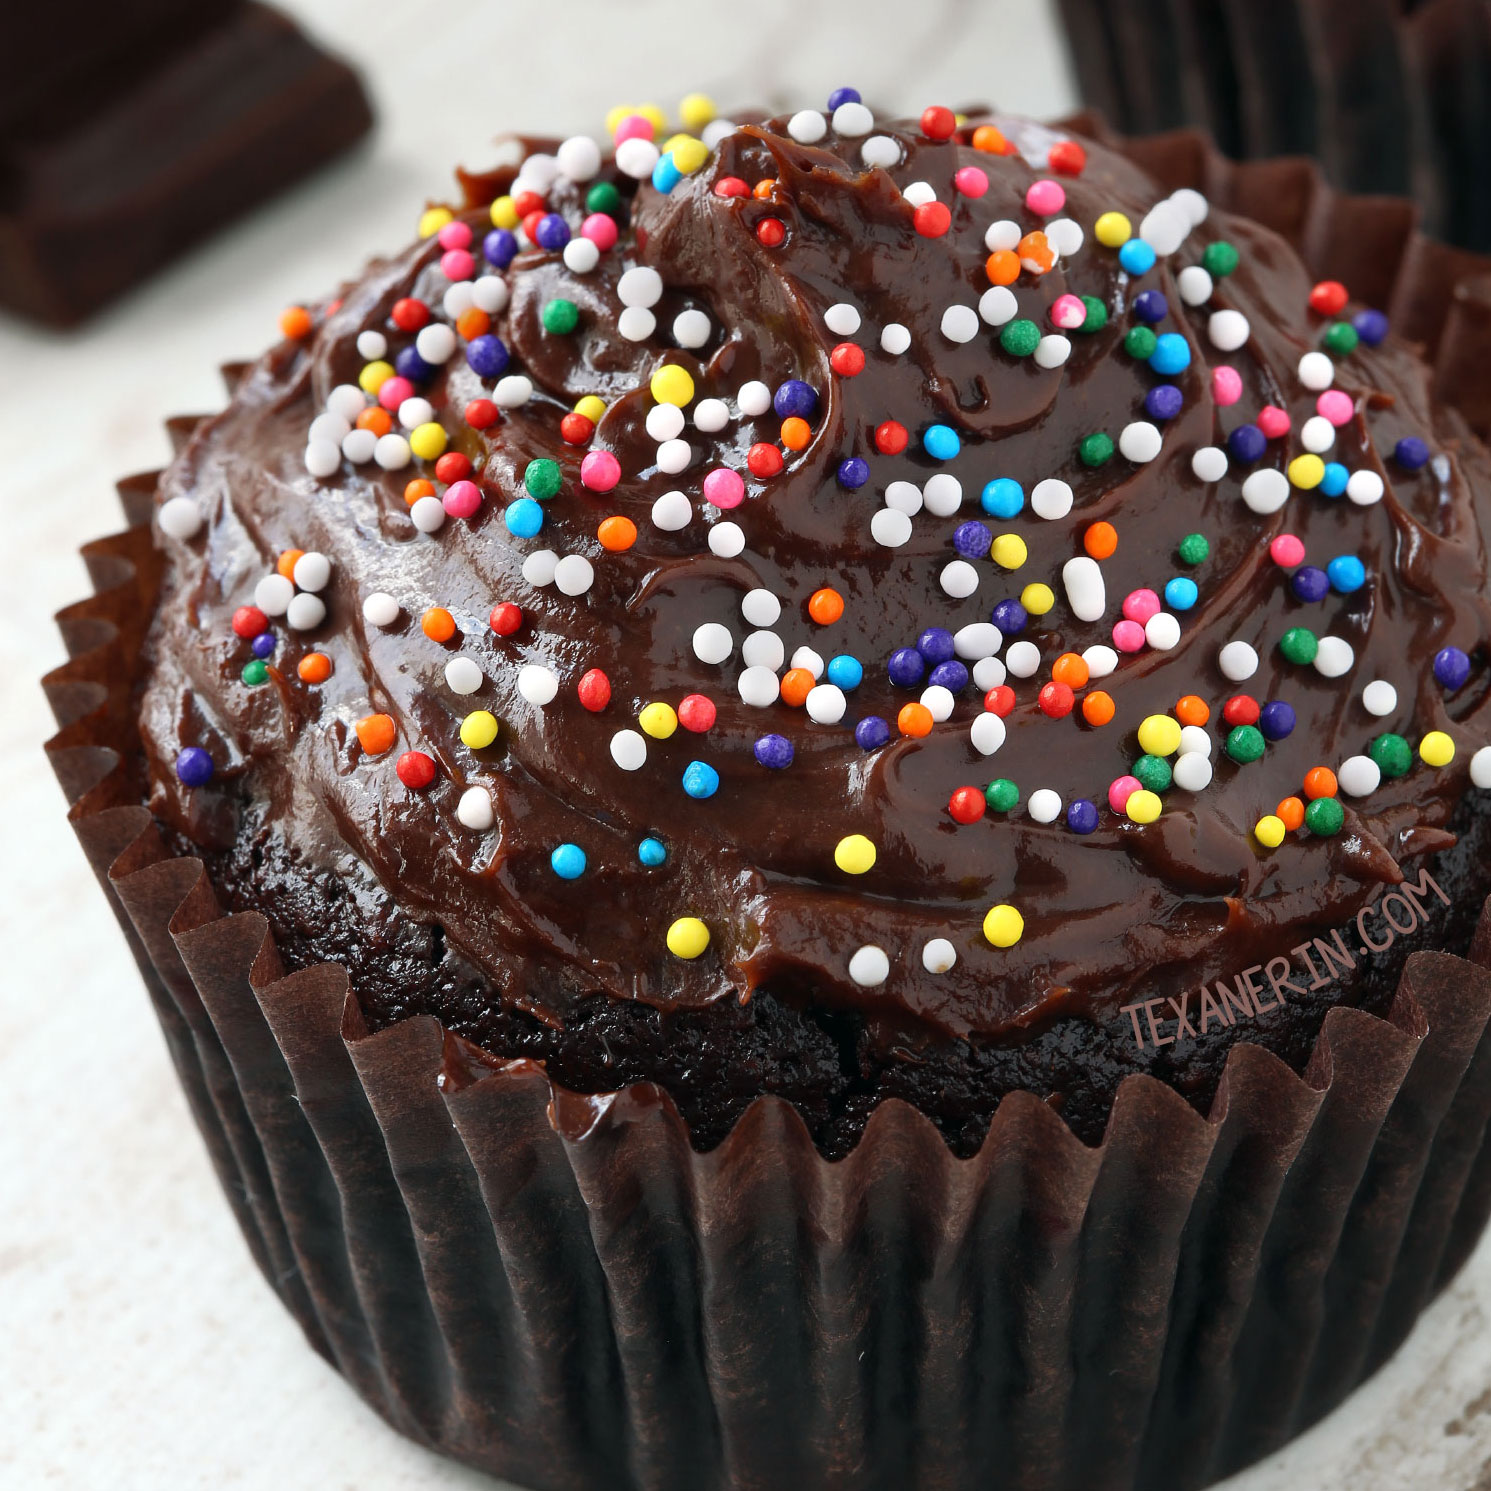 Chocolate Moist Cupcake Ingredients